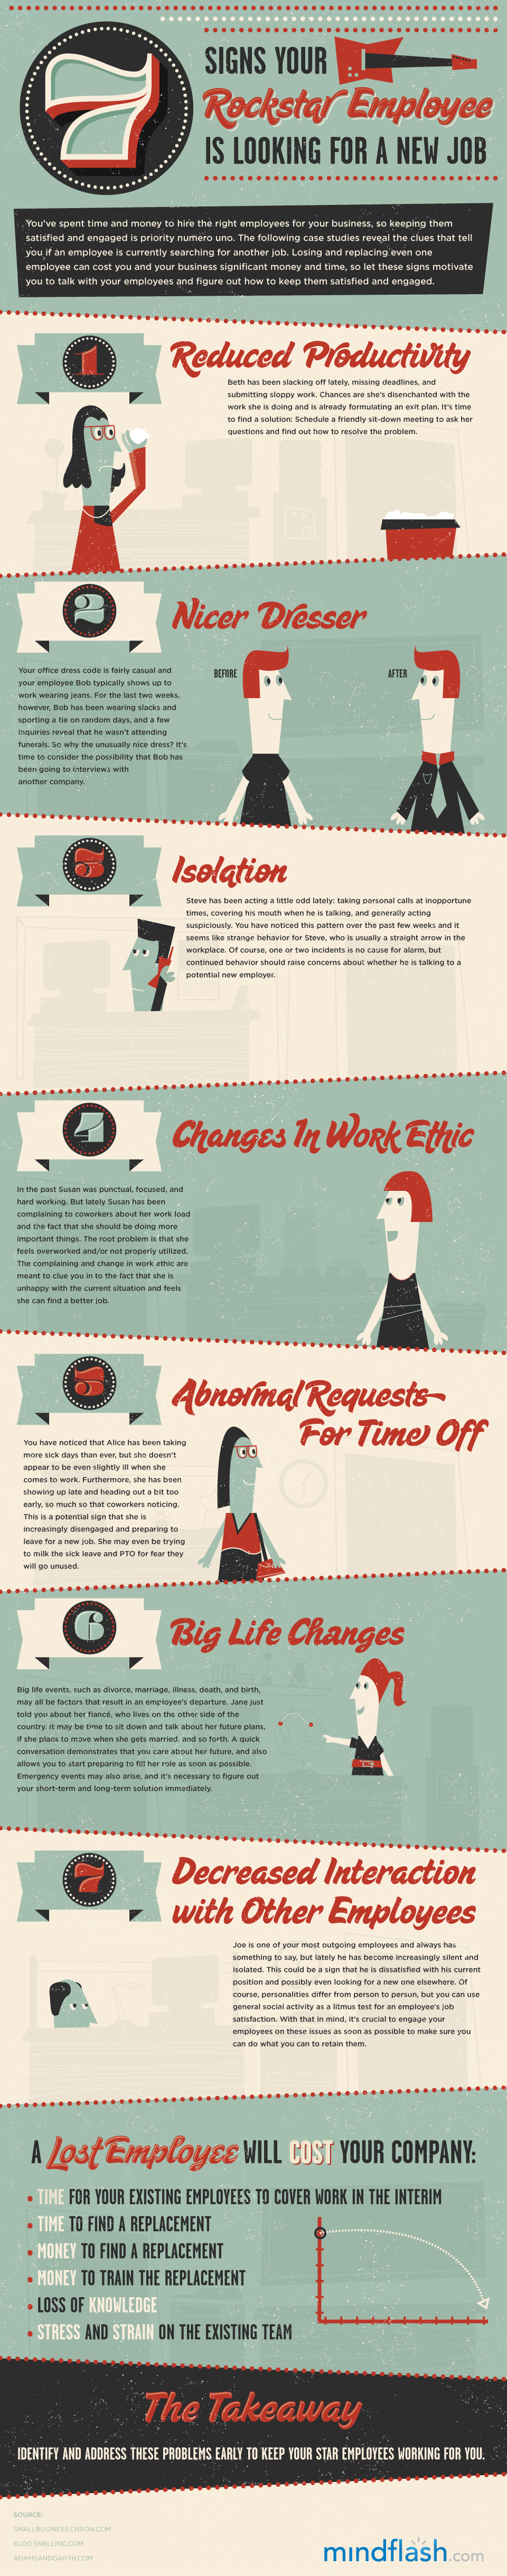 11.11.07 RockstarEmployee1 NYE Resolution: 7 Signs your best employee is looking!